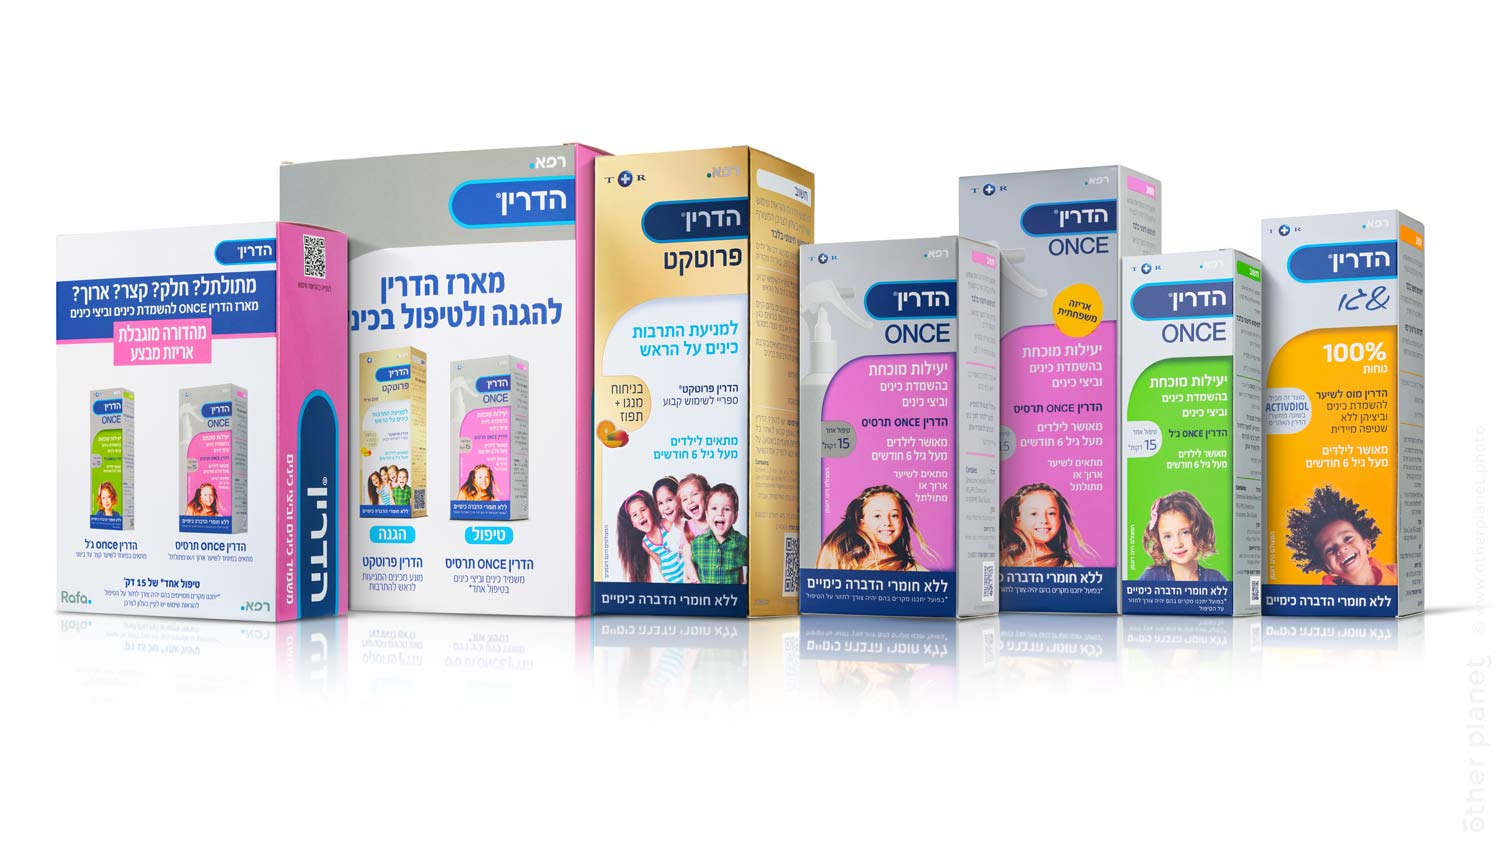 Hedrin Once medical cosmetic products collection photography